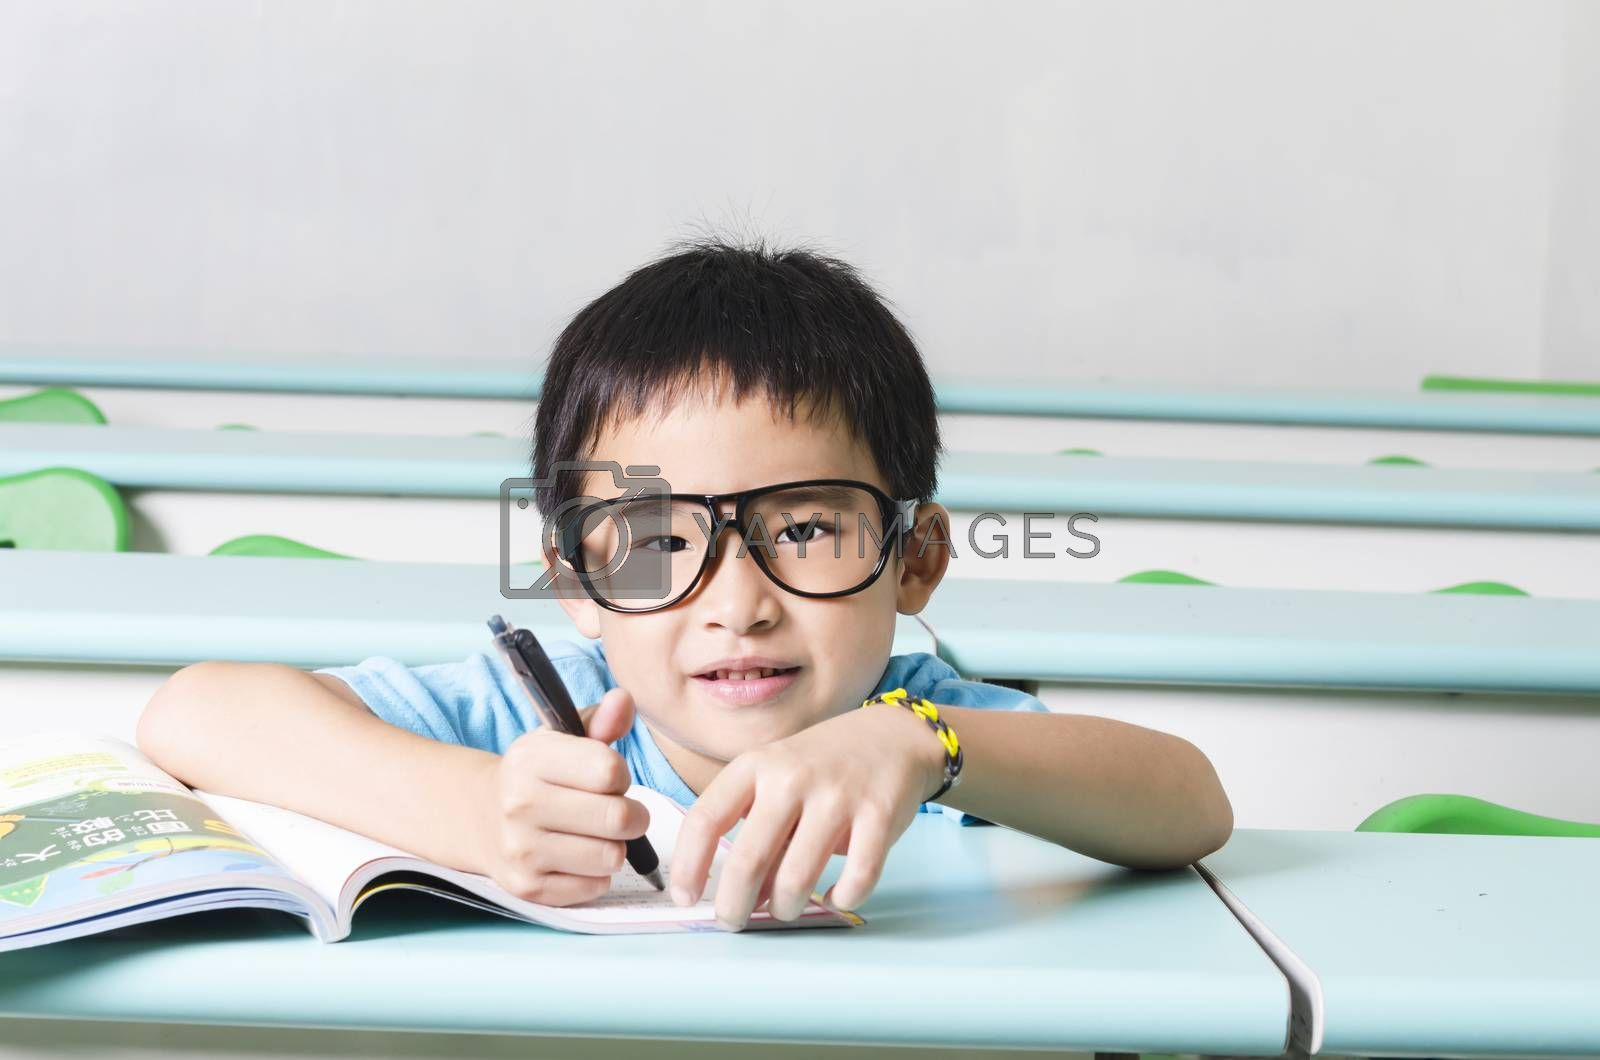 Royalty free image of Smart student by FrankyLiu